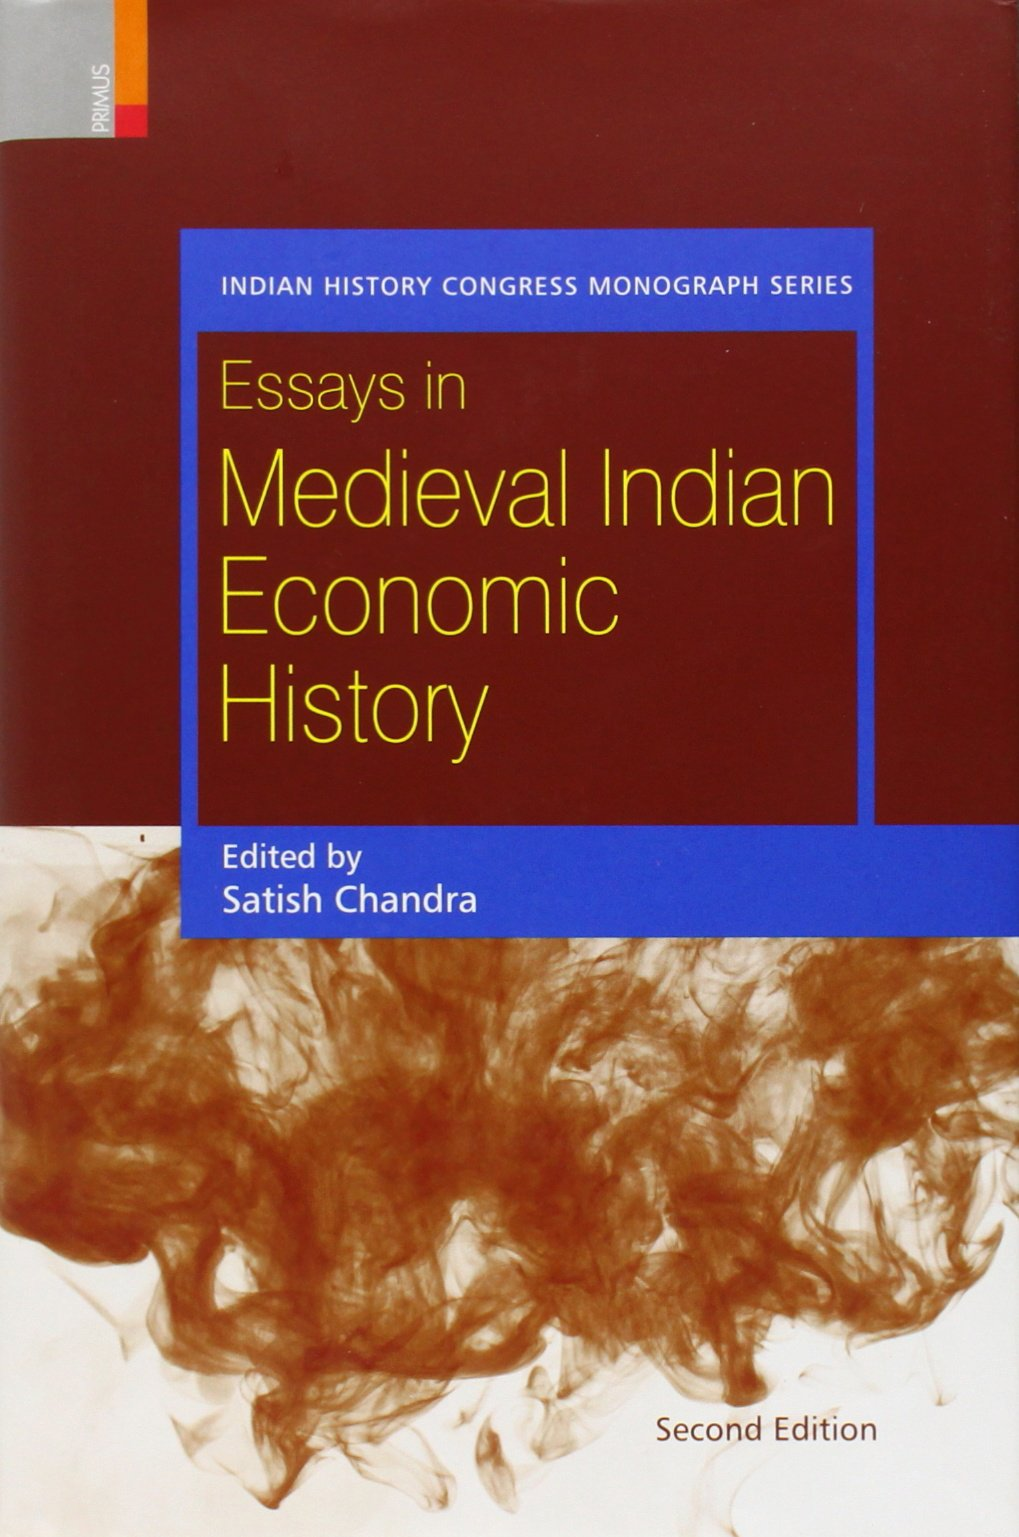 essays in medieval indian economic history Essay on indian history  sources are consulted and collated to arrive at conclusions regarding the factors of change that necessitated new socio-economic formations that led to new cultural and political patterns that shaped the course of our historical process  chief sources of medieval indian history  essay, indian history, essay on.